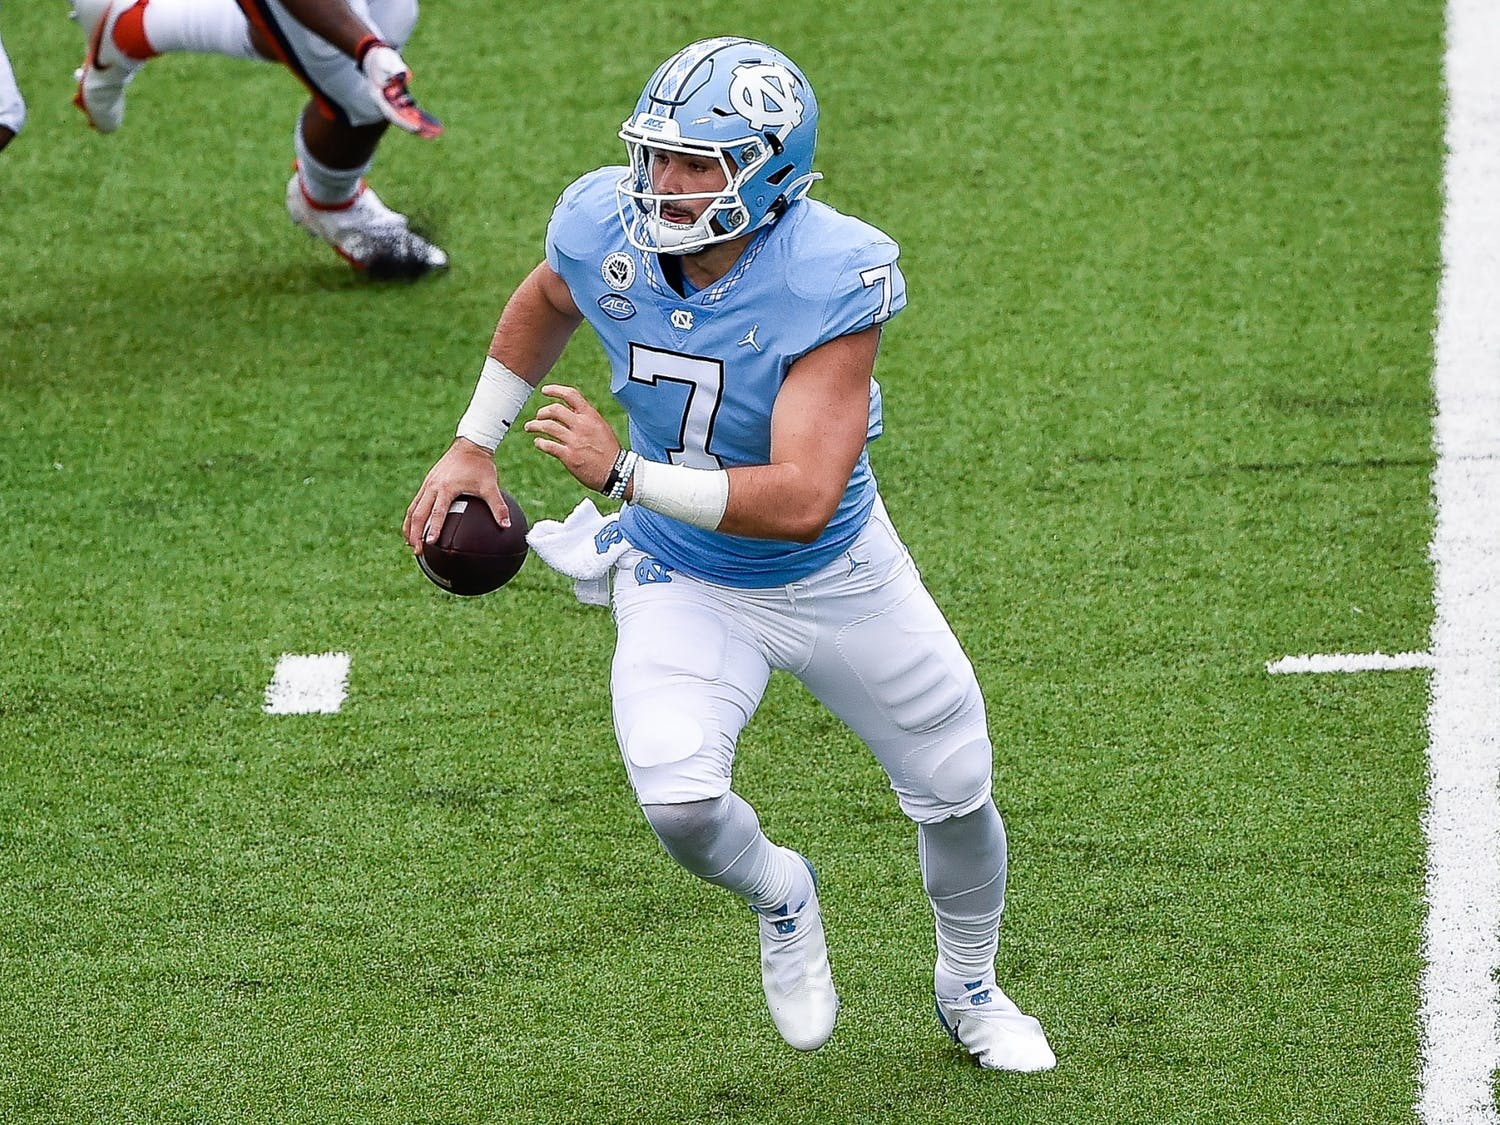 UNC sophomore quarterback Sam Howell (7) prepares to run the ball during a game against Syracuse in Kenan Memorial Stadium on Sept. 12, 2020. UNC beat Syracuse 31-6.